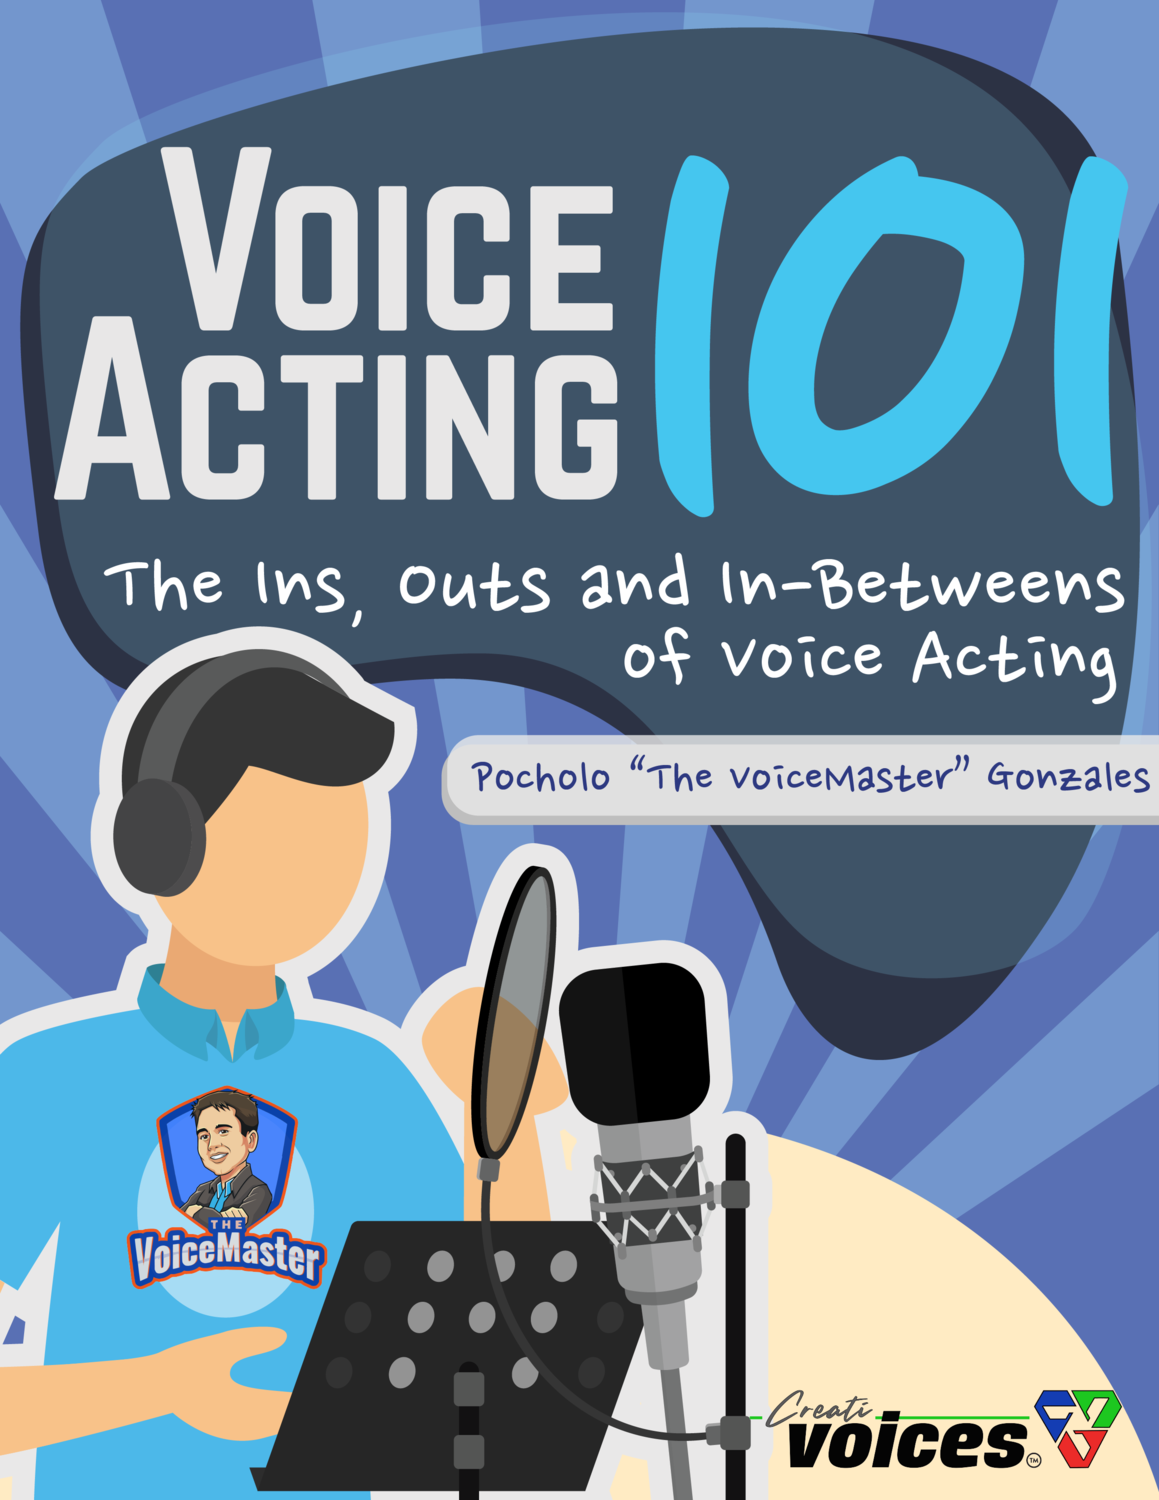 Voice Acting 101 - The Ins, Outs and In-Betweens of Voice Acting